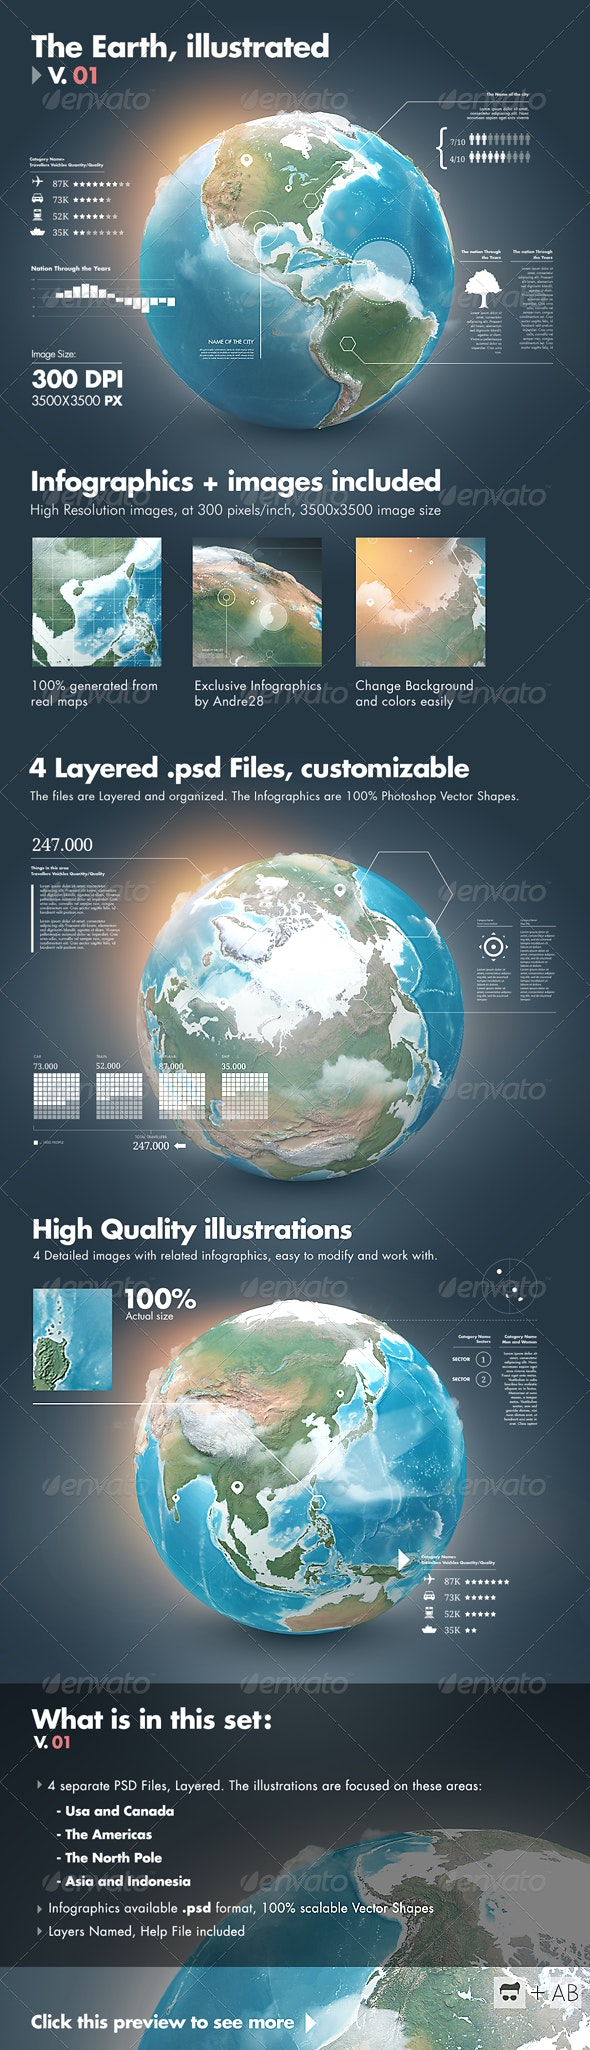 Earth Illustrations and Infographics - V1 - Infographics